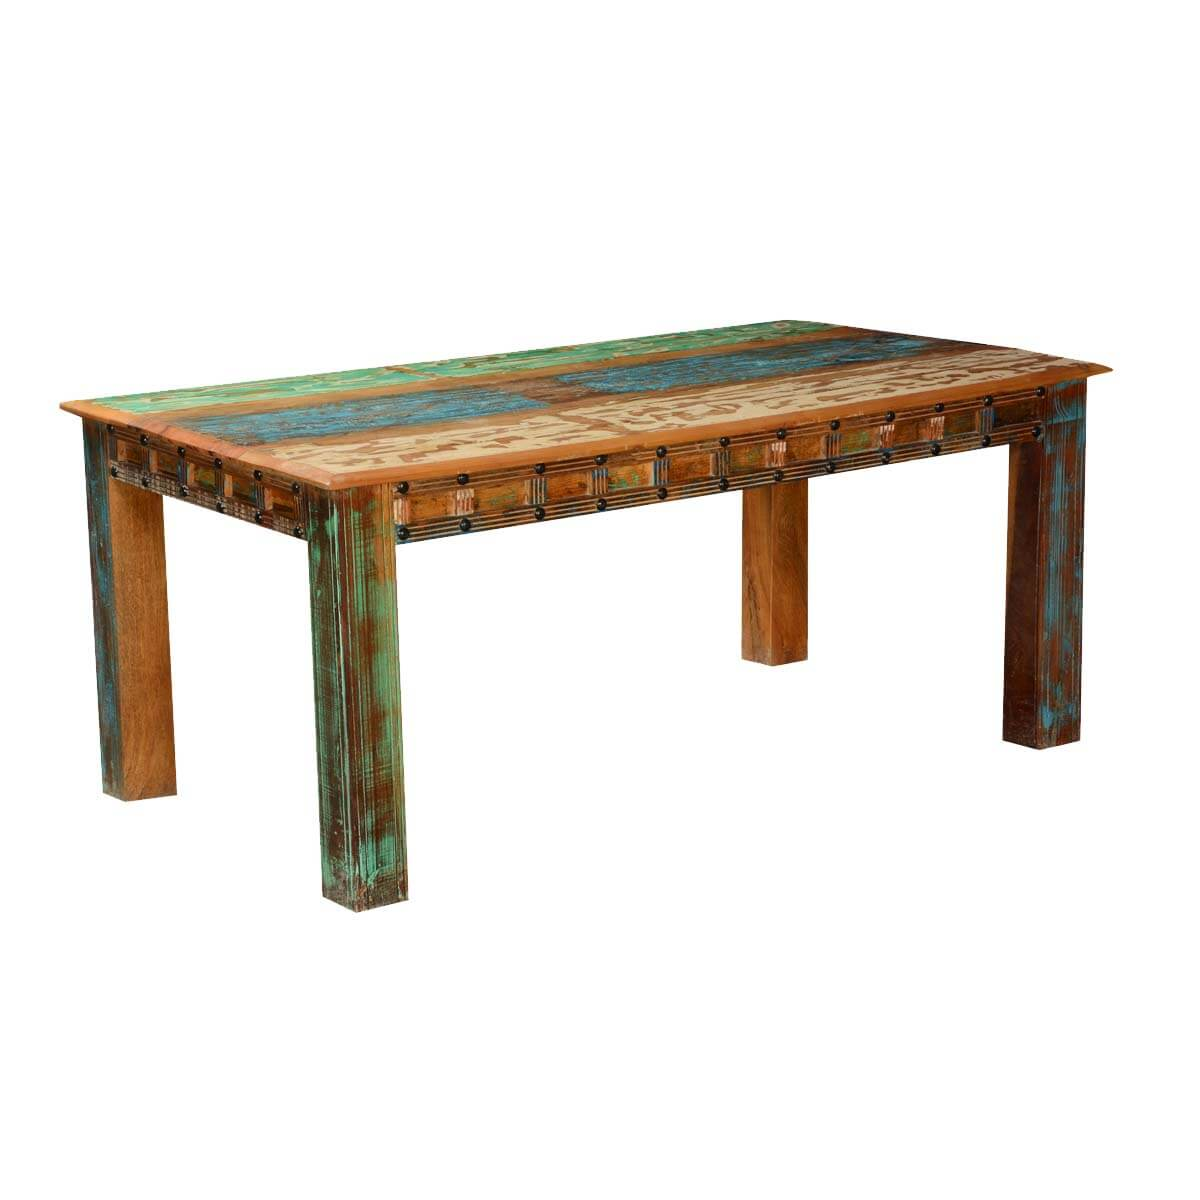 Rustic Wooden Dining Tables ~ Gothic rustic rainbow reclaimed wood dining table